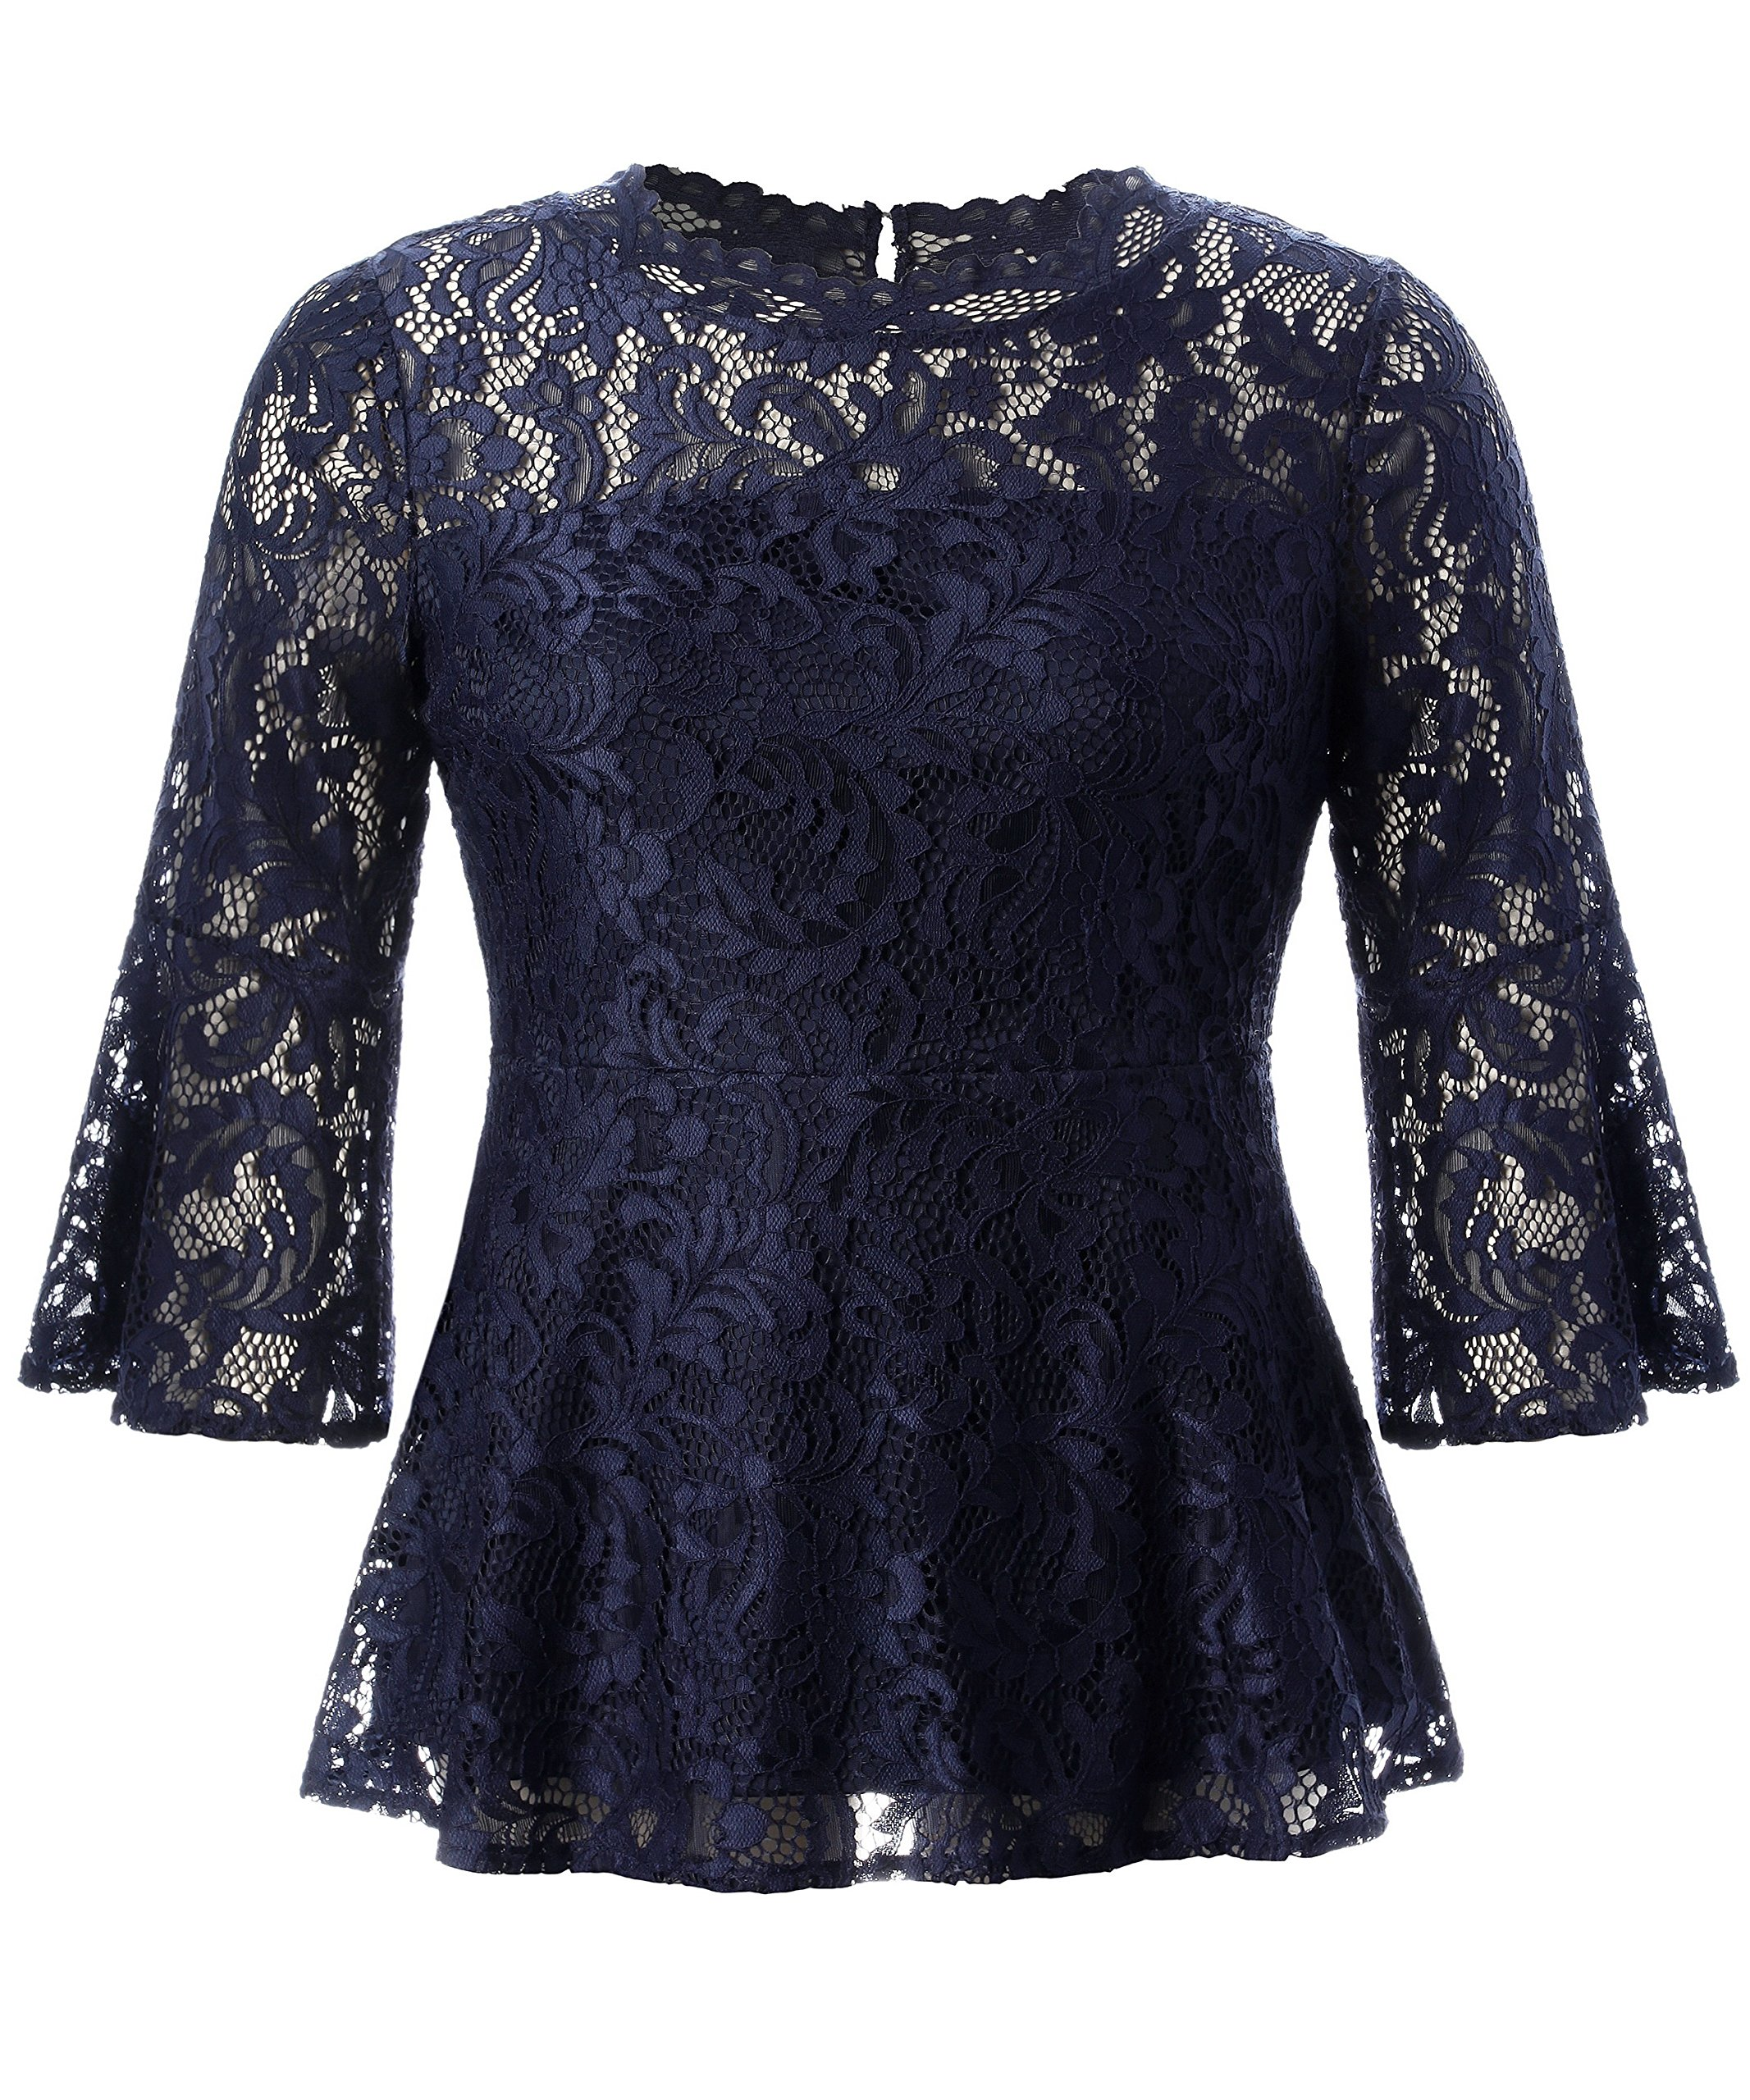 Chicwe Women's Plus Size Stretch Romantic Lace Peplum Top with Scalloped Neck & Flare Sleeves Navy 4X